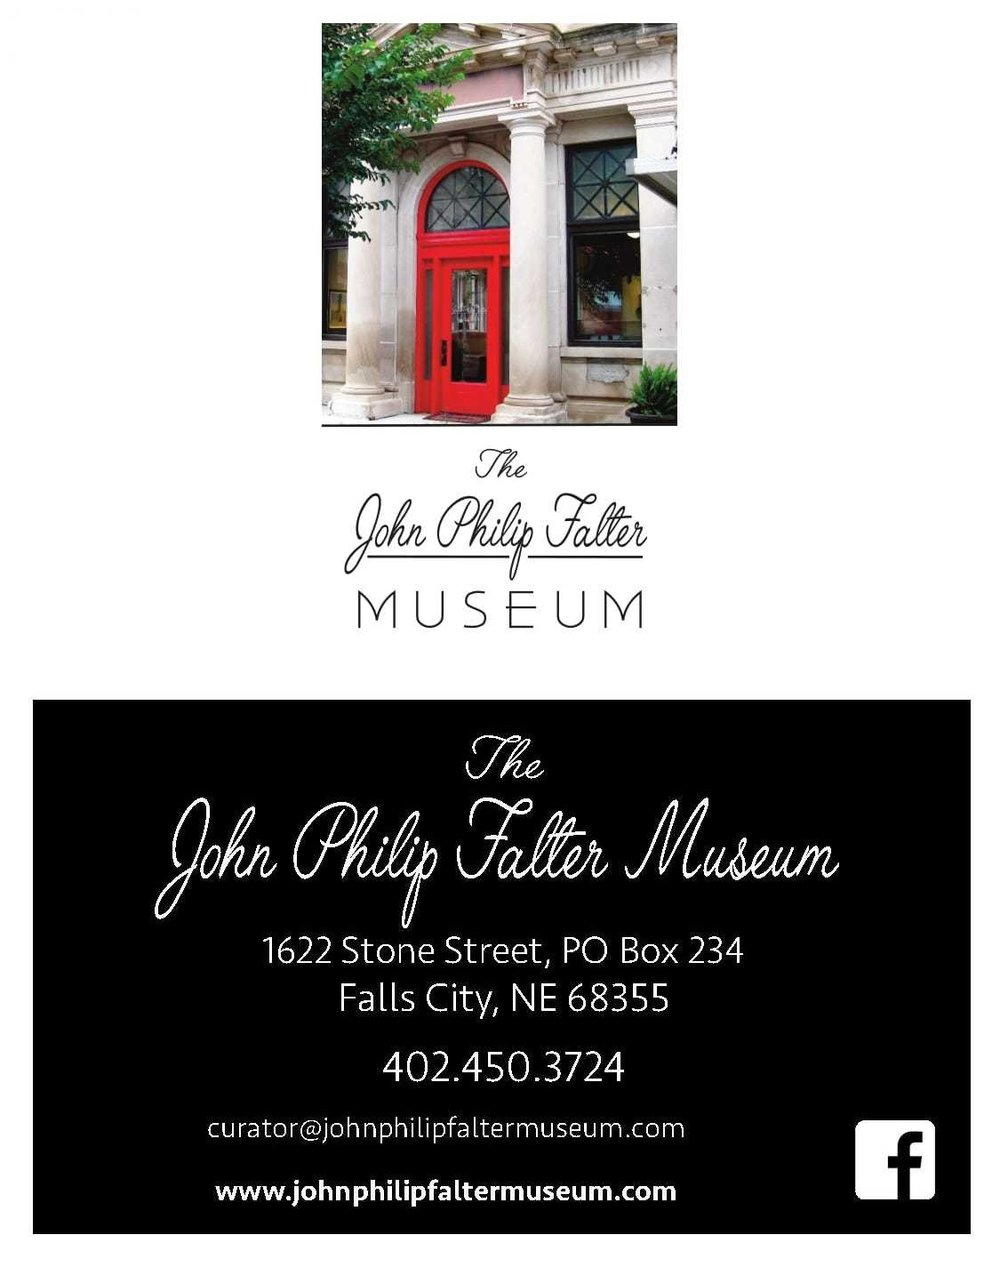 Museum Business Cards (designed by Wolfe's Printing - Falls City, NE)